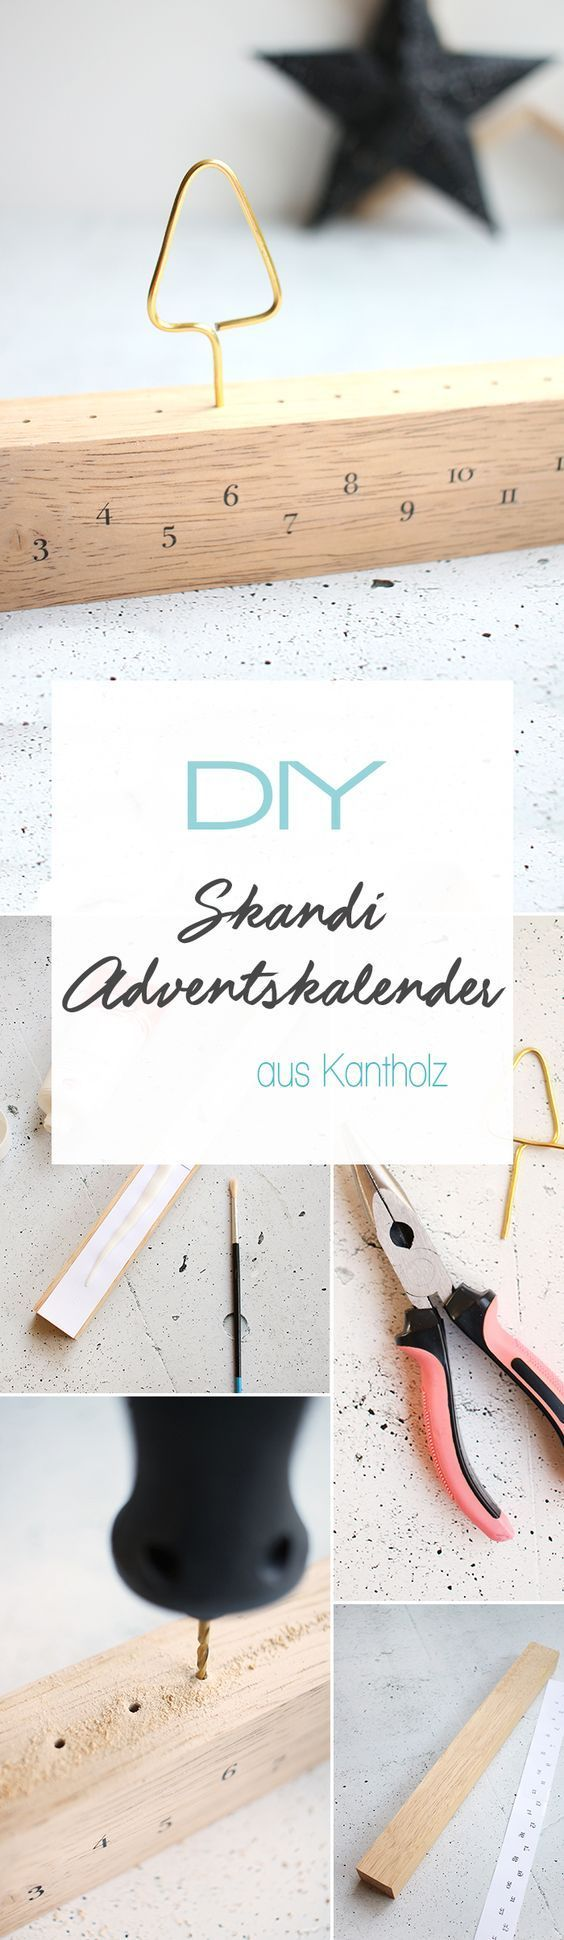 Do it yourself: Schlichter Adventskalender aus Kantholz basteln